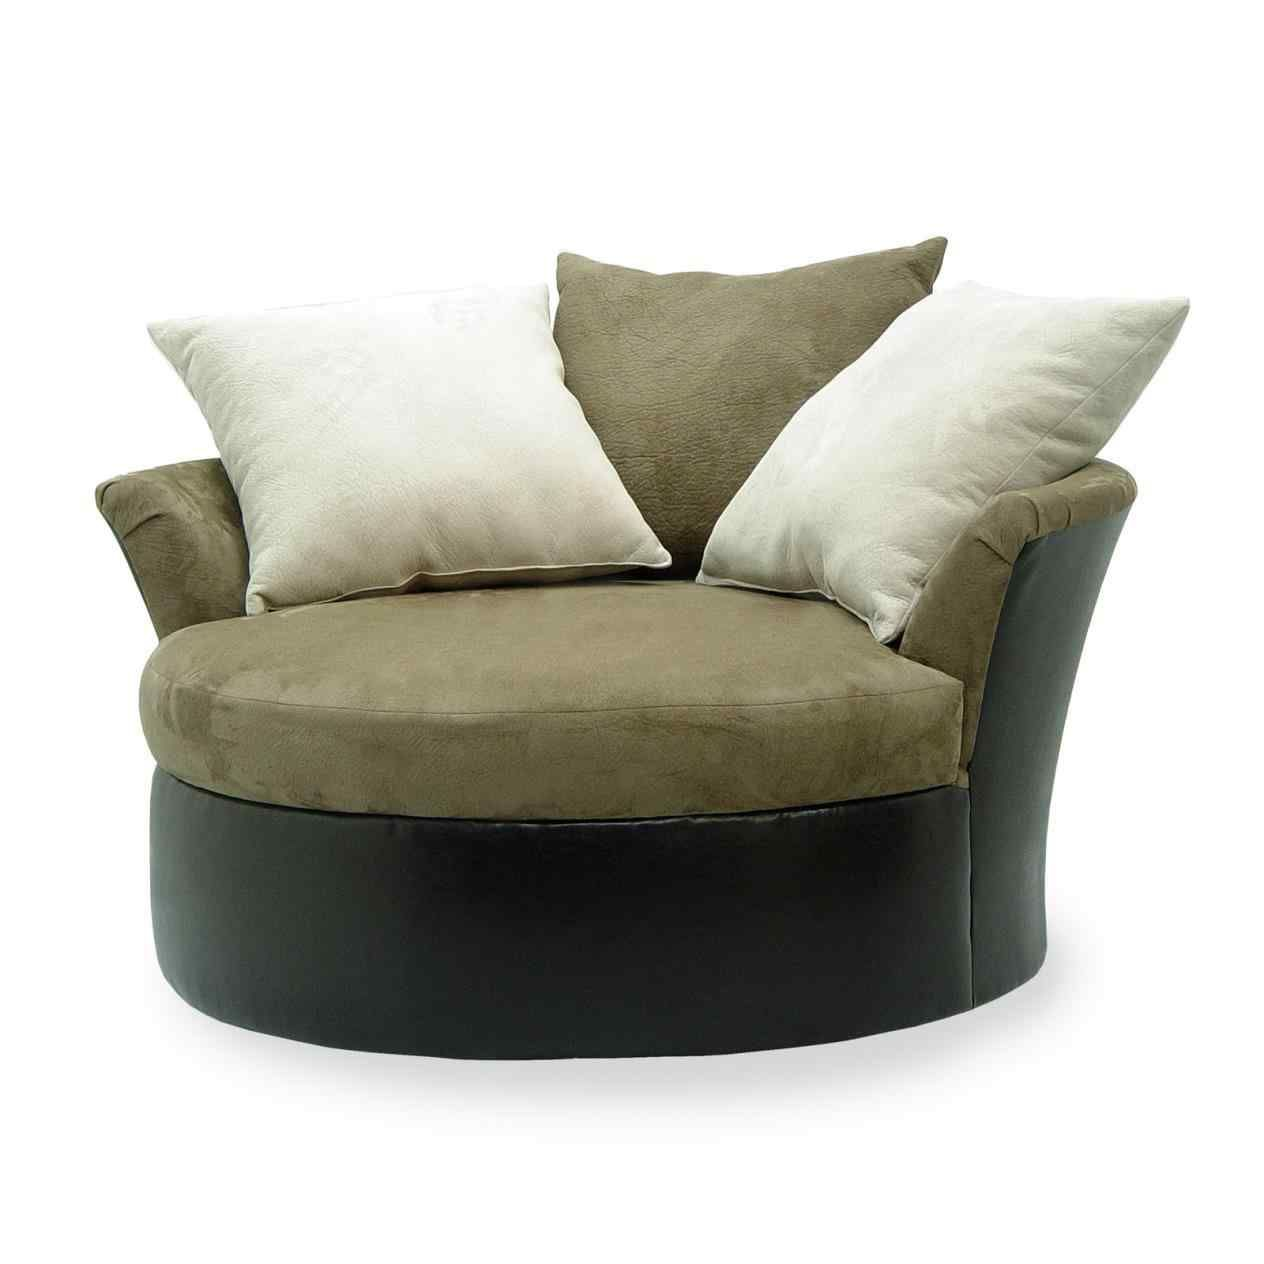 - 14 Cheap Ergonomic Chaise Lounge For Relaxing Contemporary